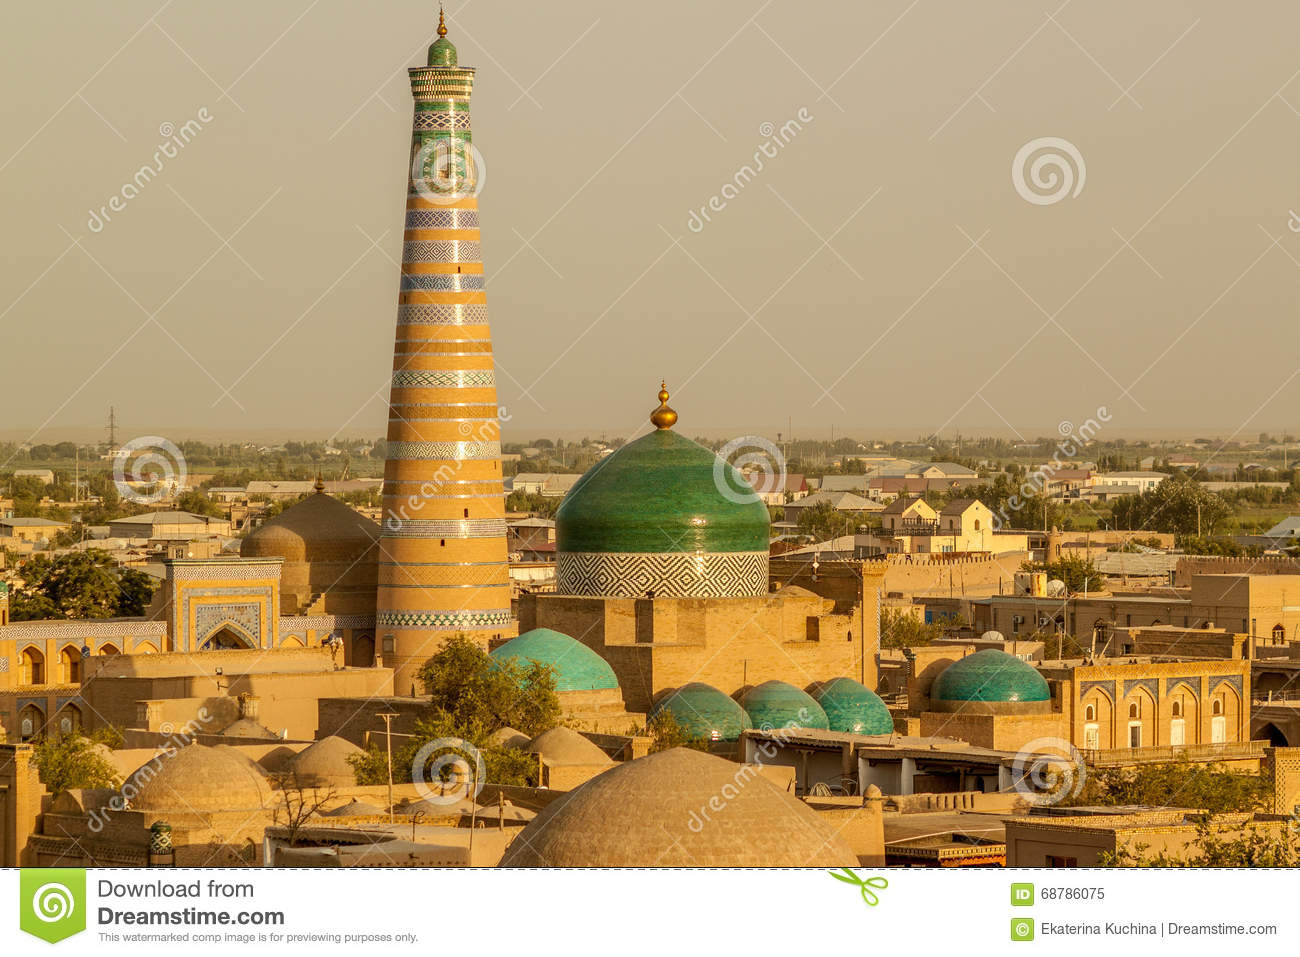 29dda807d68f5c View of the city of Khiva from the top. 6 blue domes of mosques and  madrassahs and high minarets with turquoise stripes. Beautiful architecture  of Central ...